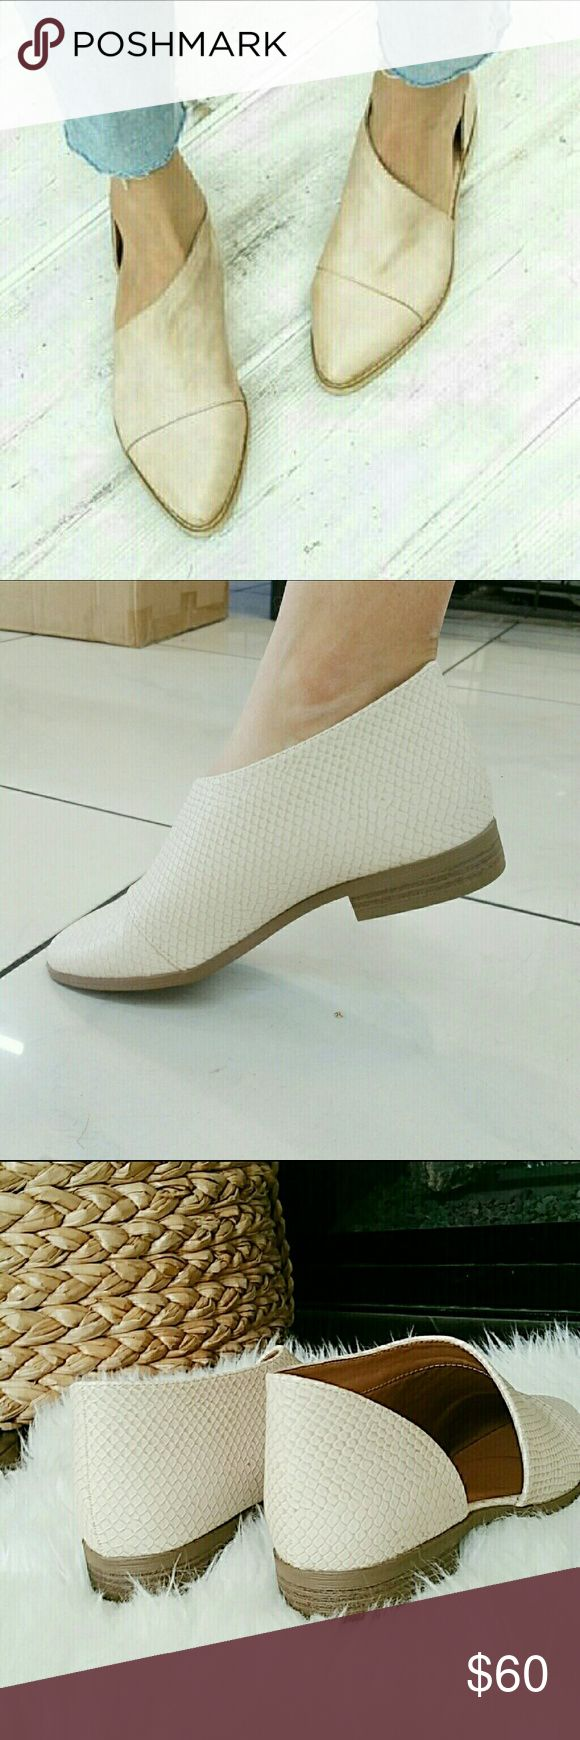 """Faux Snake Skin Ankle Cut Out Flats - Beige @blushonme at Poshmark   Beige faux snake skin ankle Cut out flats   ALSO AVAILABLE IN BLACK!  True to size  (Heels do pop up when walking)  Heel - Approx 1""""  ● PRICE IS FIRM ●  PLEASE ASK QUESTIONS BEFORE BUYING. ALL SALES ARE FINAL. NO RETURNS. NO EXCHANGES.   Box not included  Boutique brand  No Trade Shoes Flats & Loafers"""